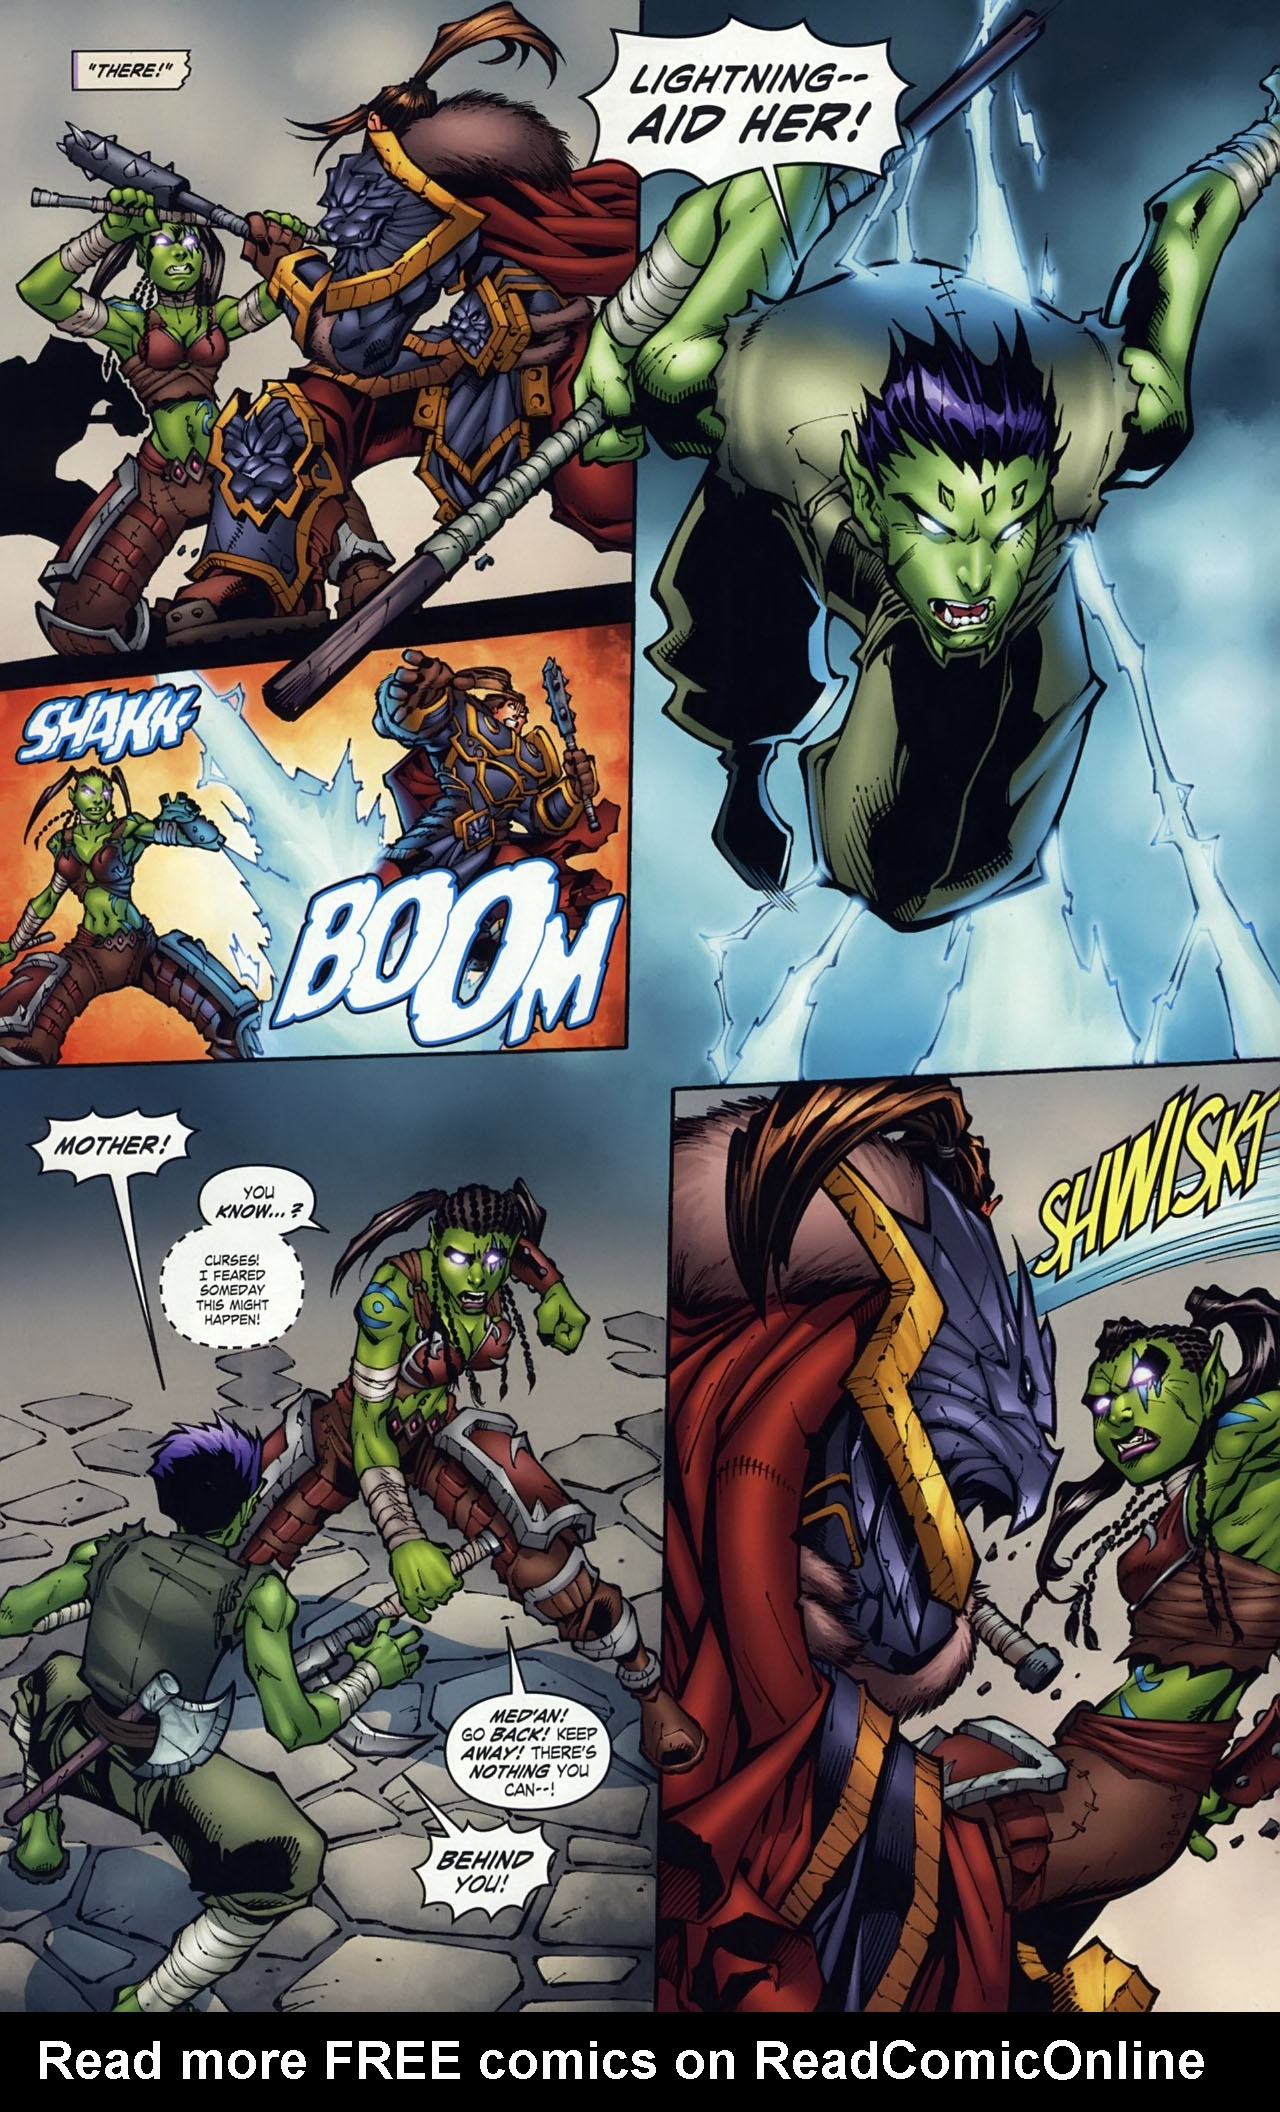 Read online World of Warcraft comic -  Issue #18 - 7